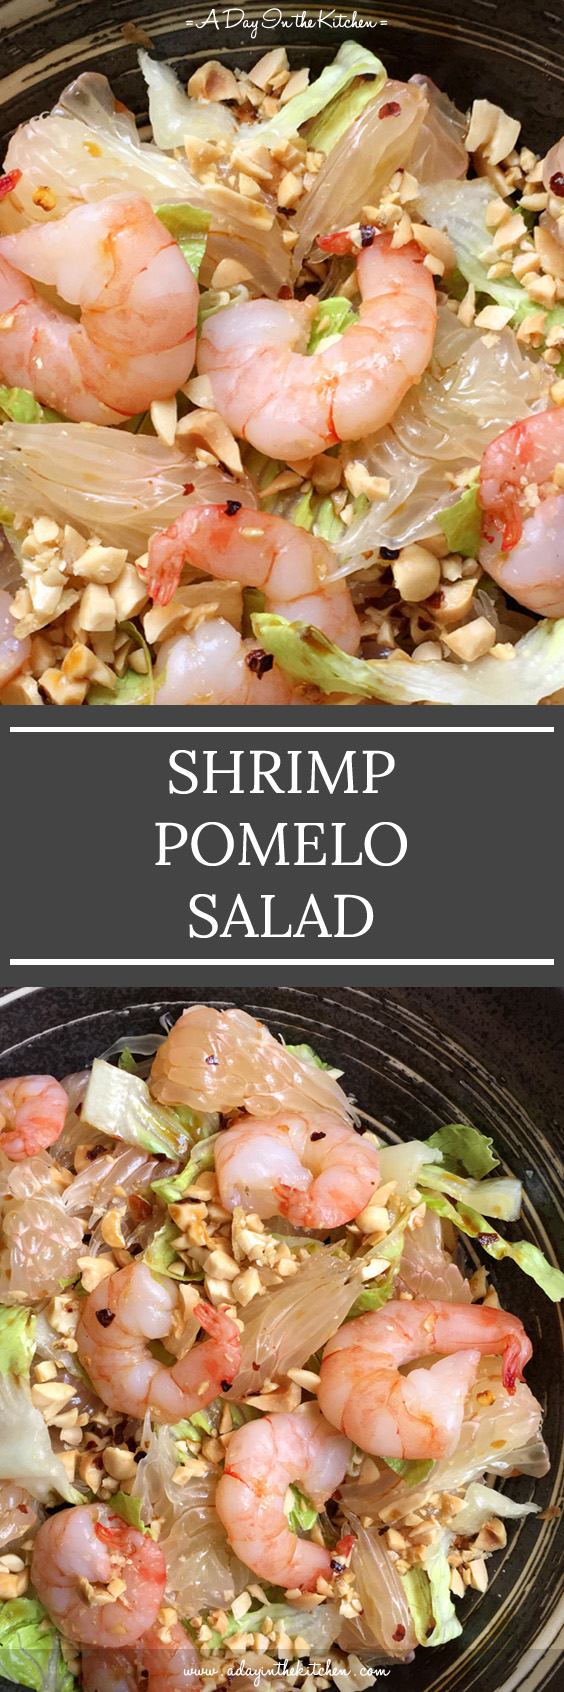 Tender shrimp, juicy pomelo wedges, crunchy peanuts, and a spicy, tangy, sweet dressing combine to make the perfect salad.